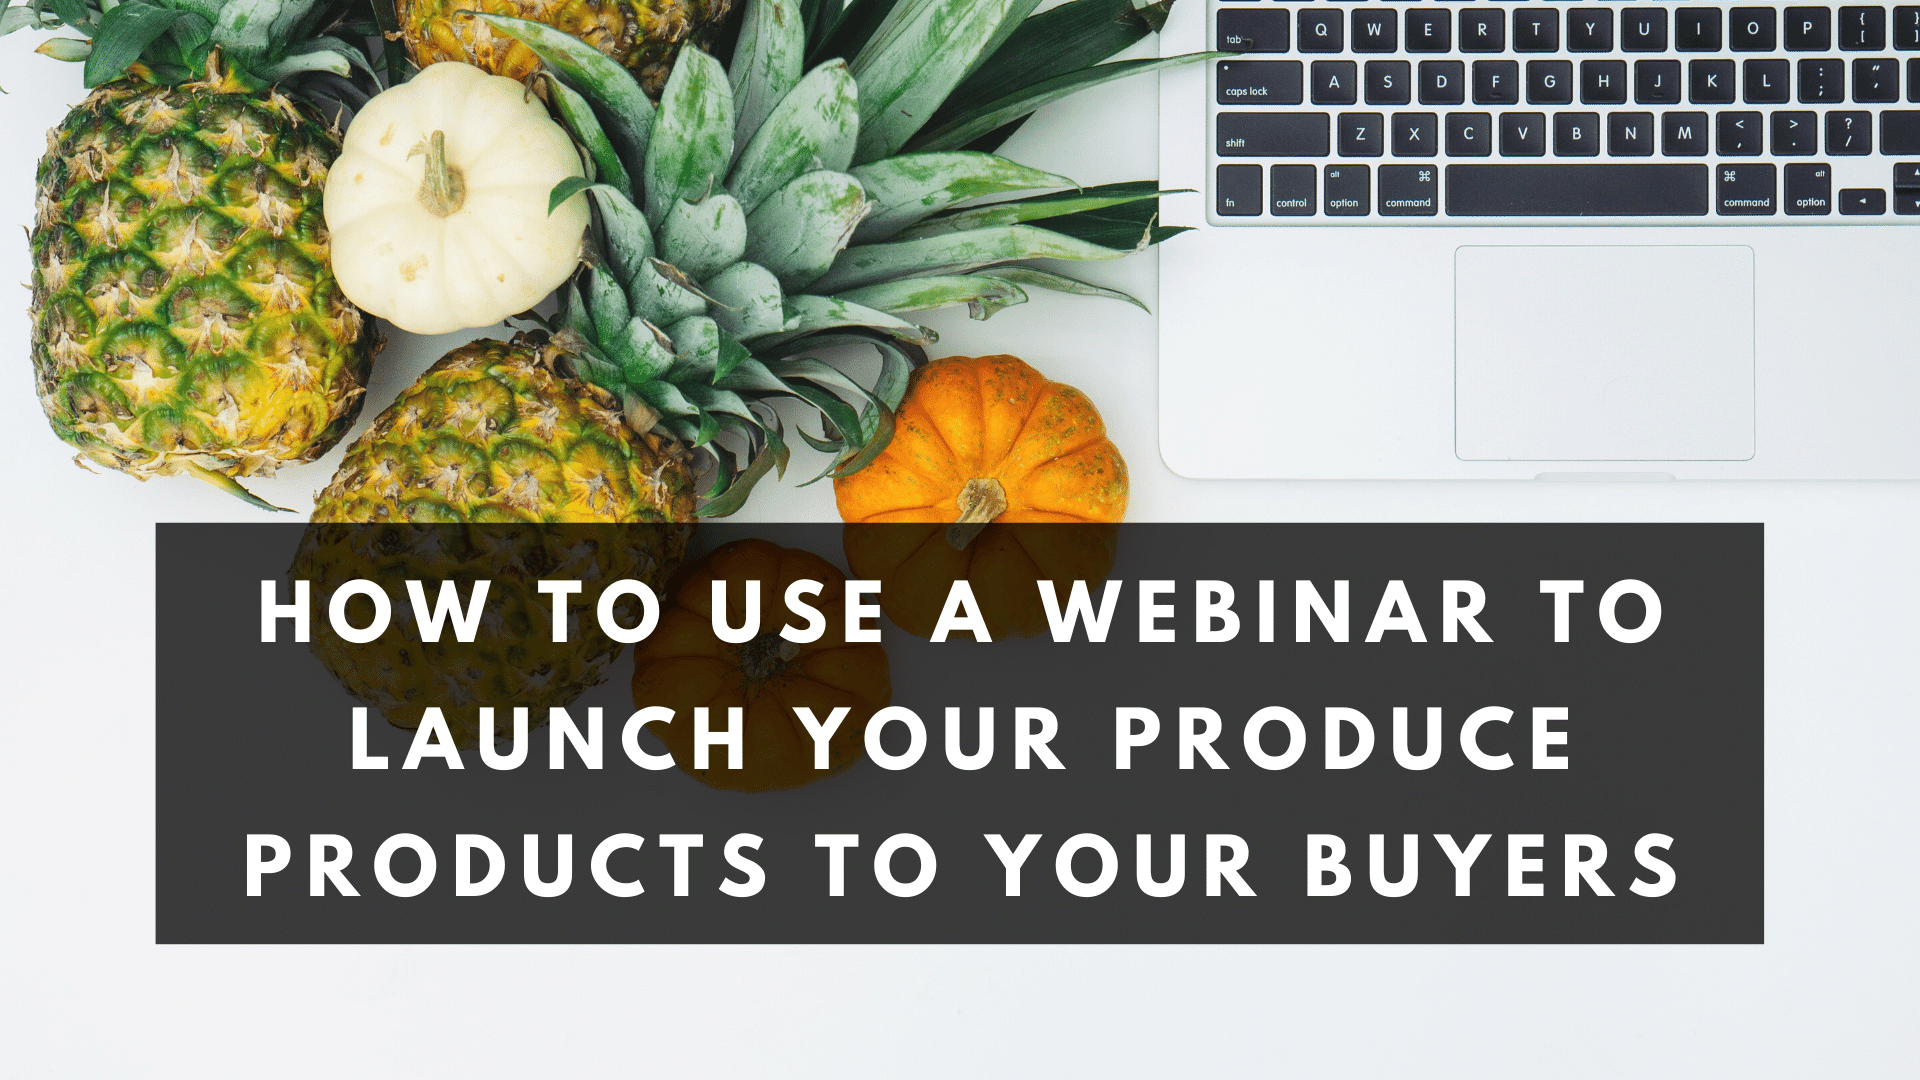 How to Use a Webinar to Launch Your Produce Products to Your Buyers